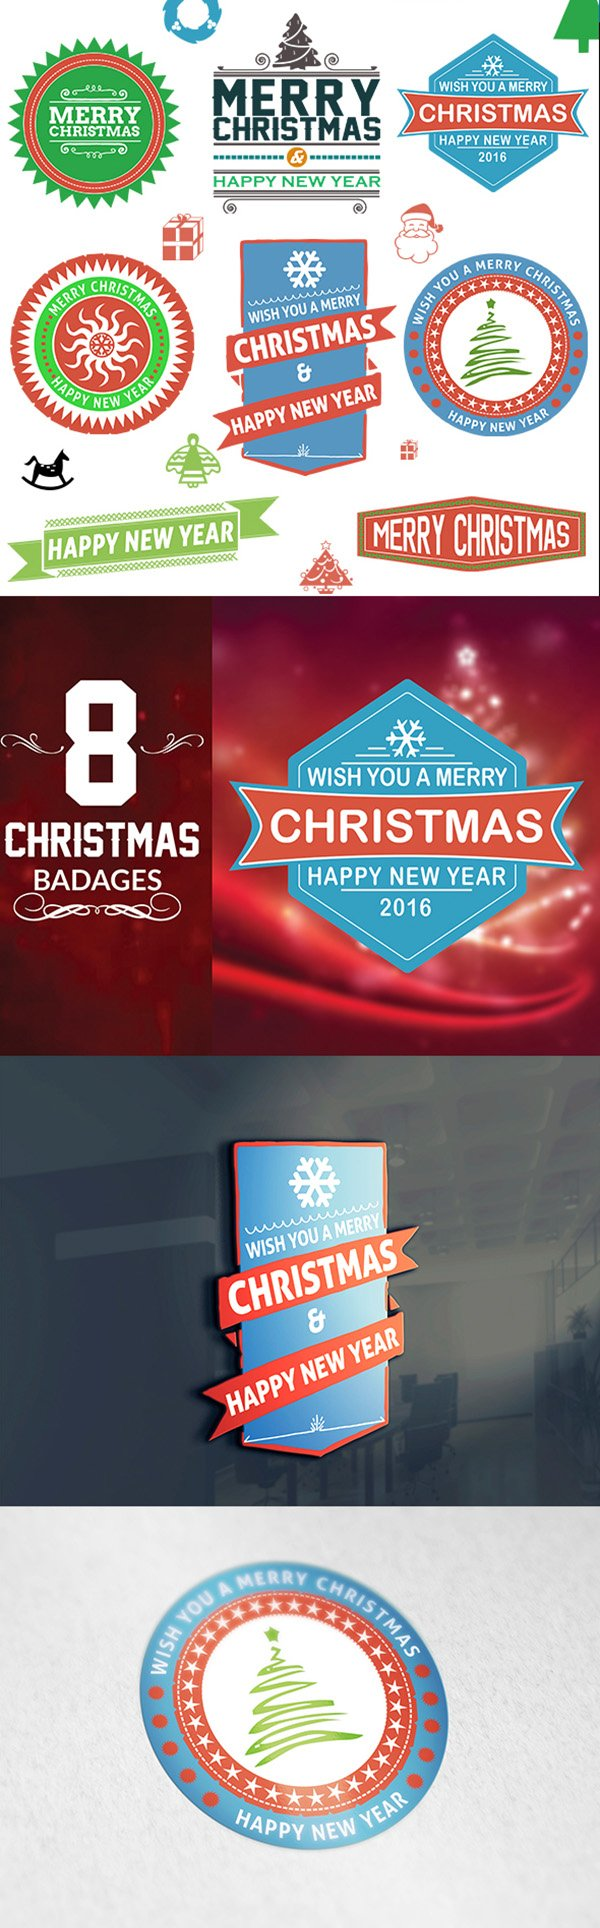 Free Christmas Badges